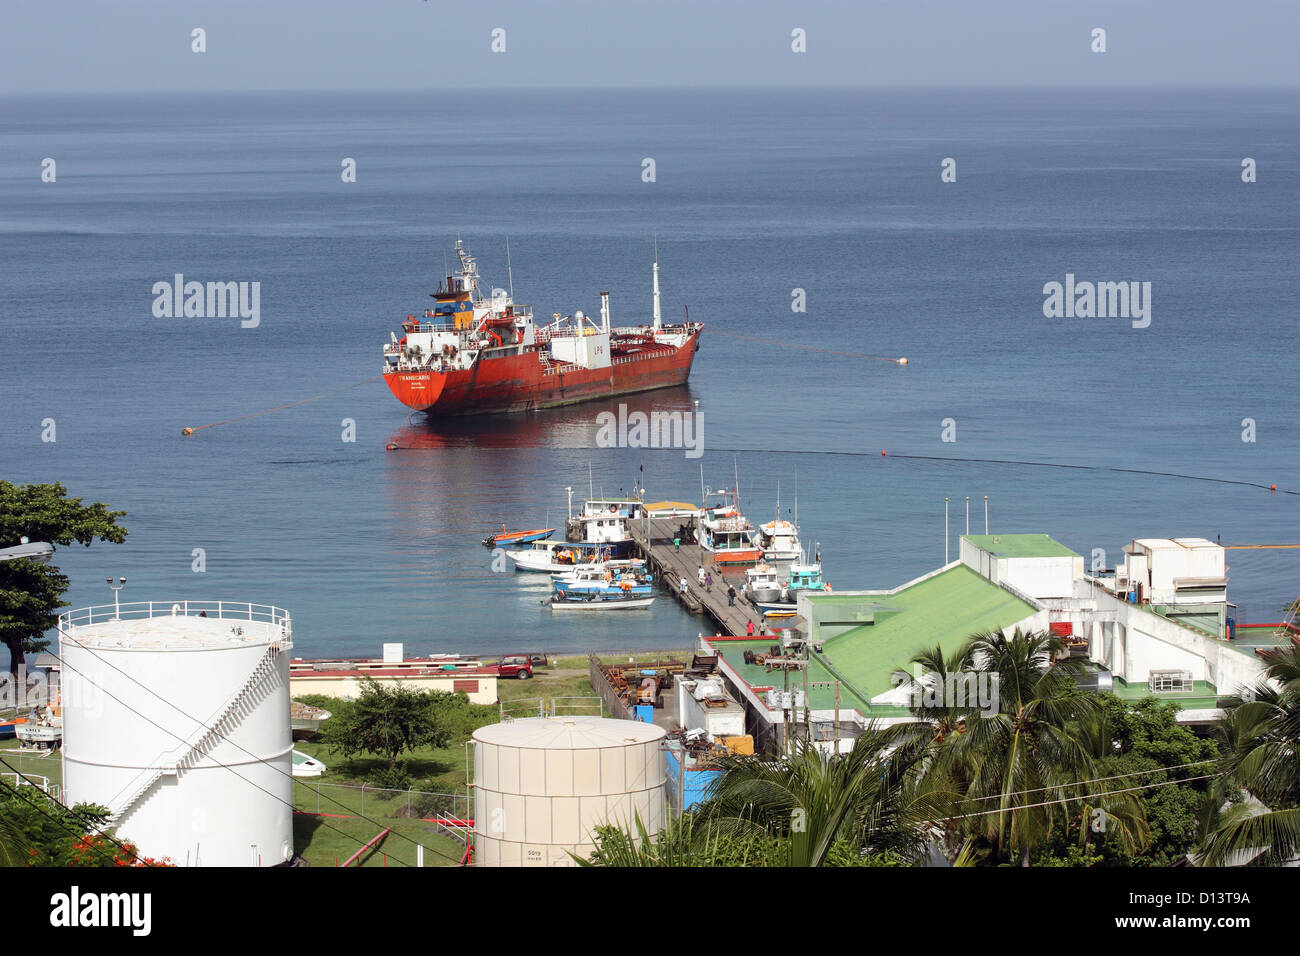 Grenada. View of fuel tanker offshore from storage tanks. - Stock Image